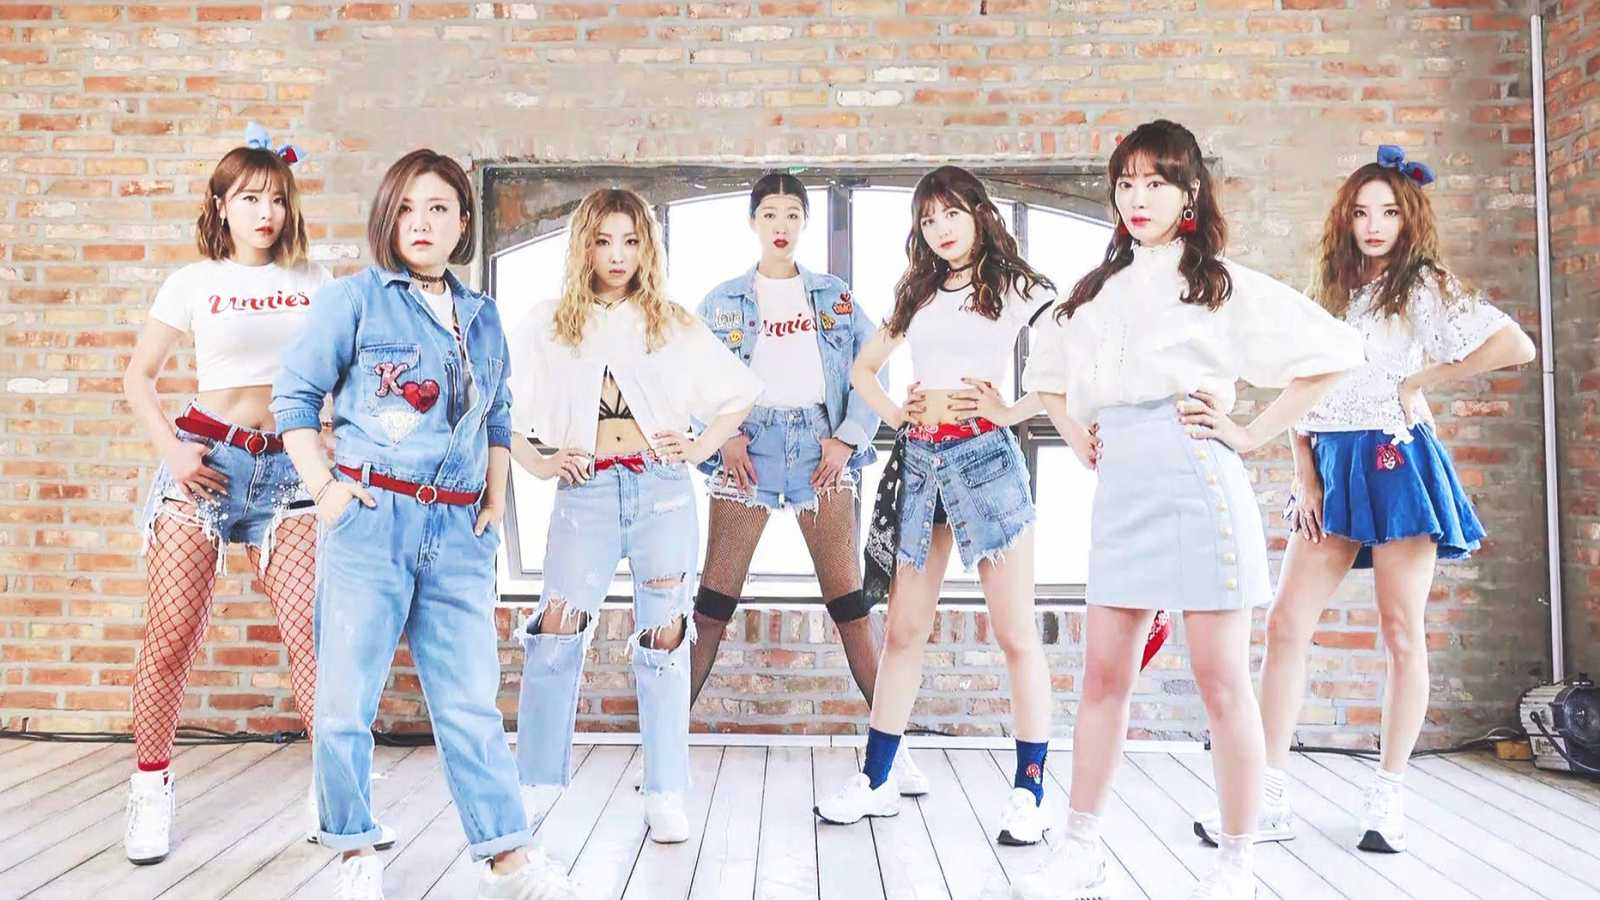 UNNIES © Unnies Slam Dunk. All rights reserved